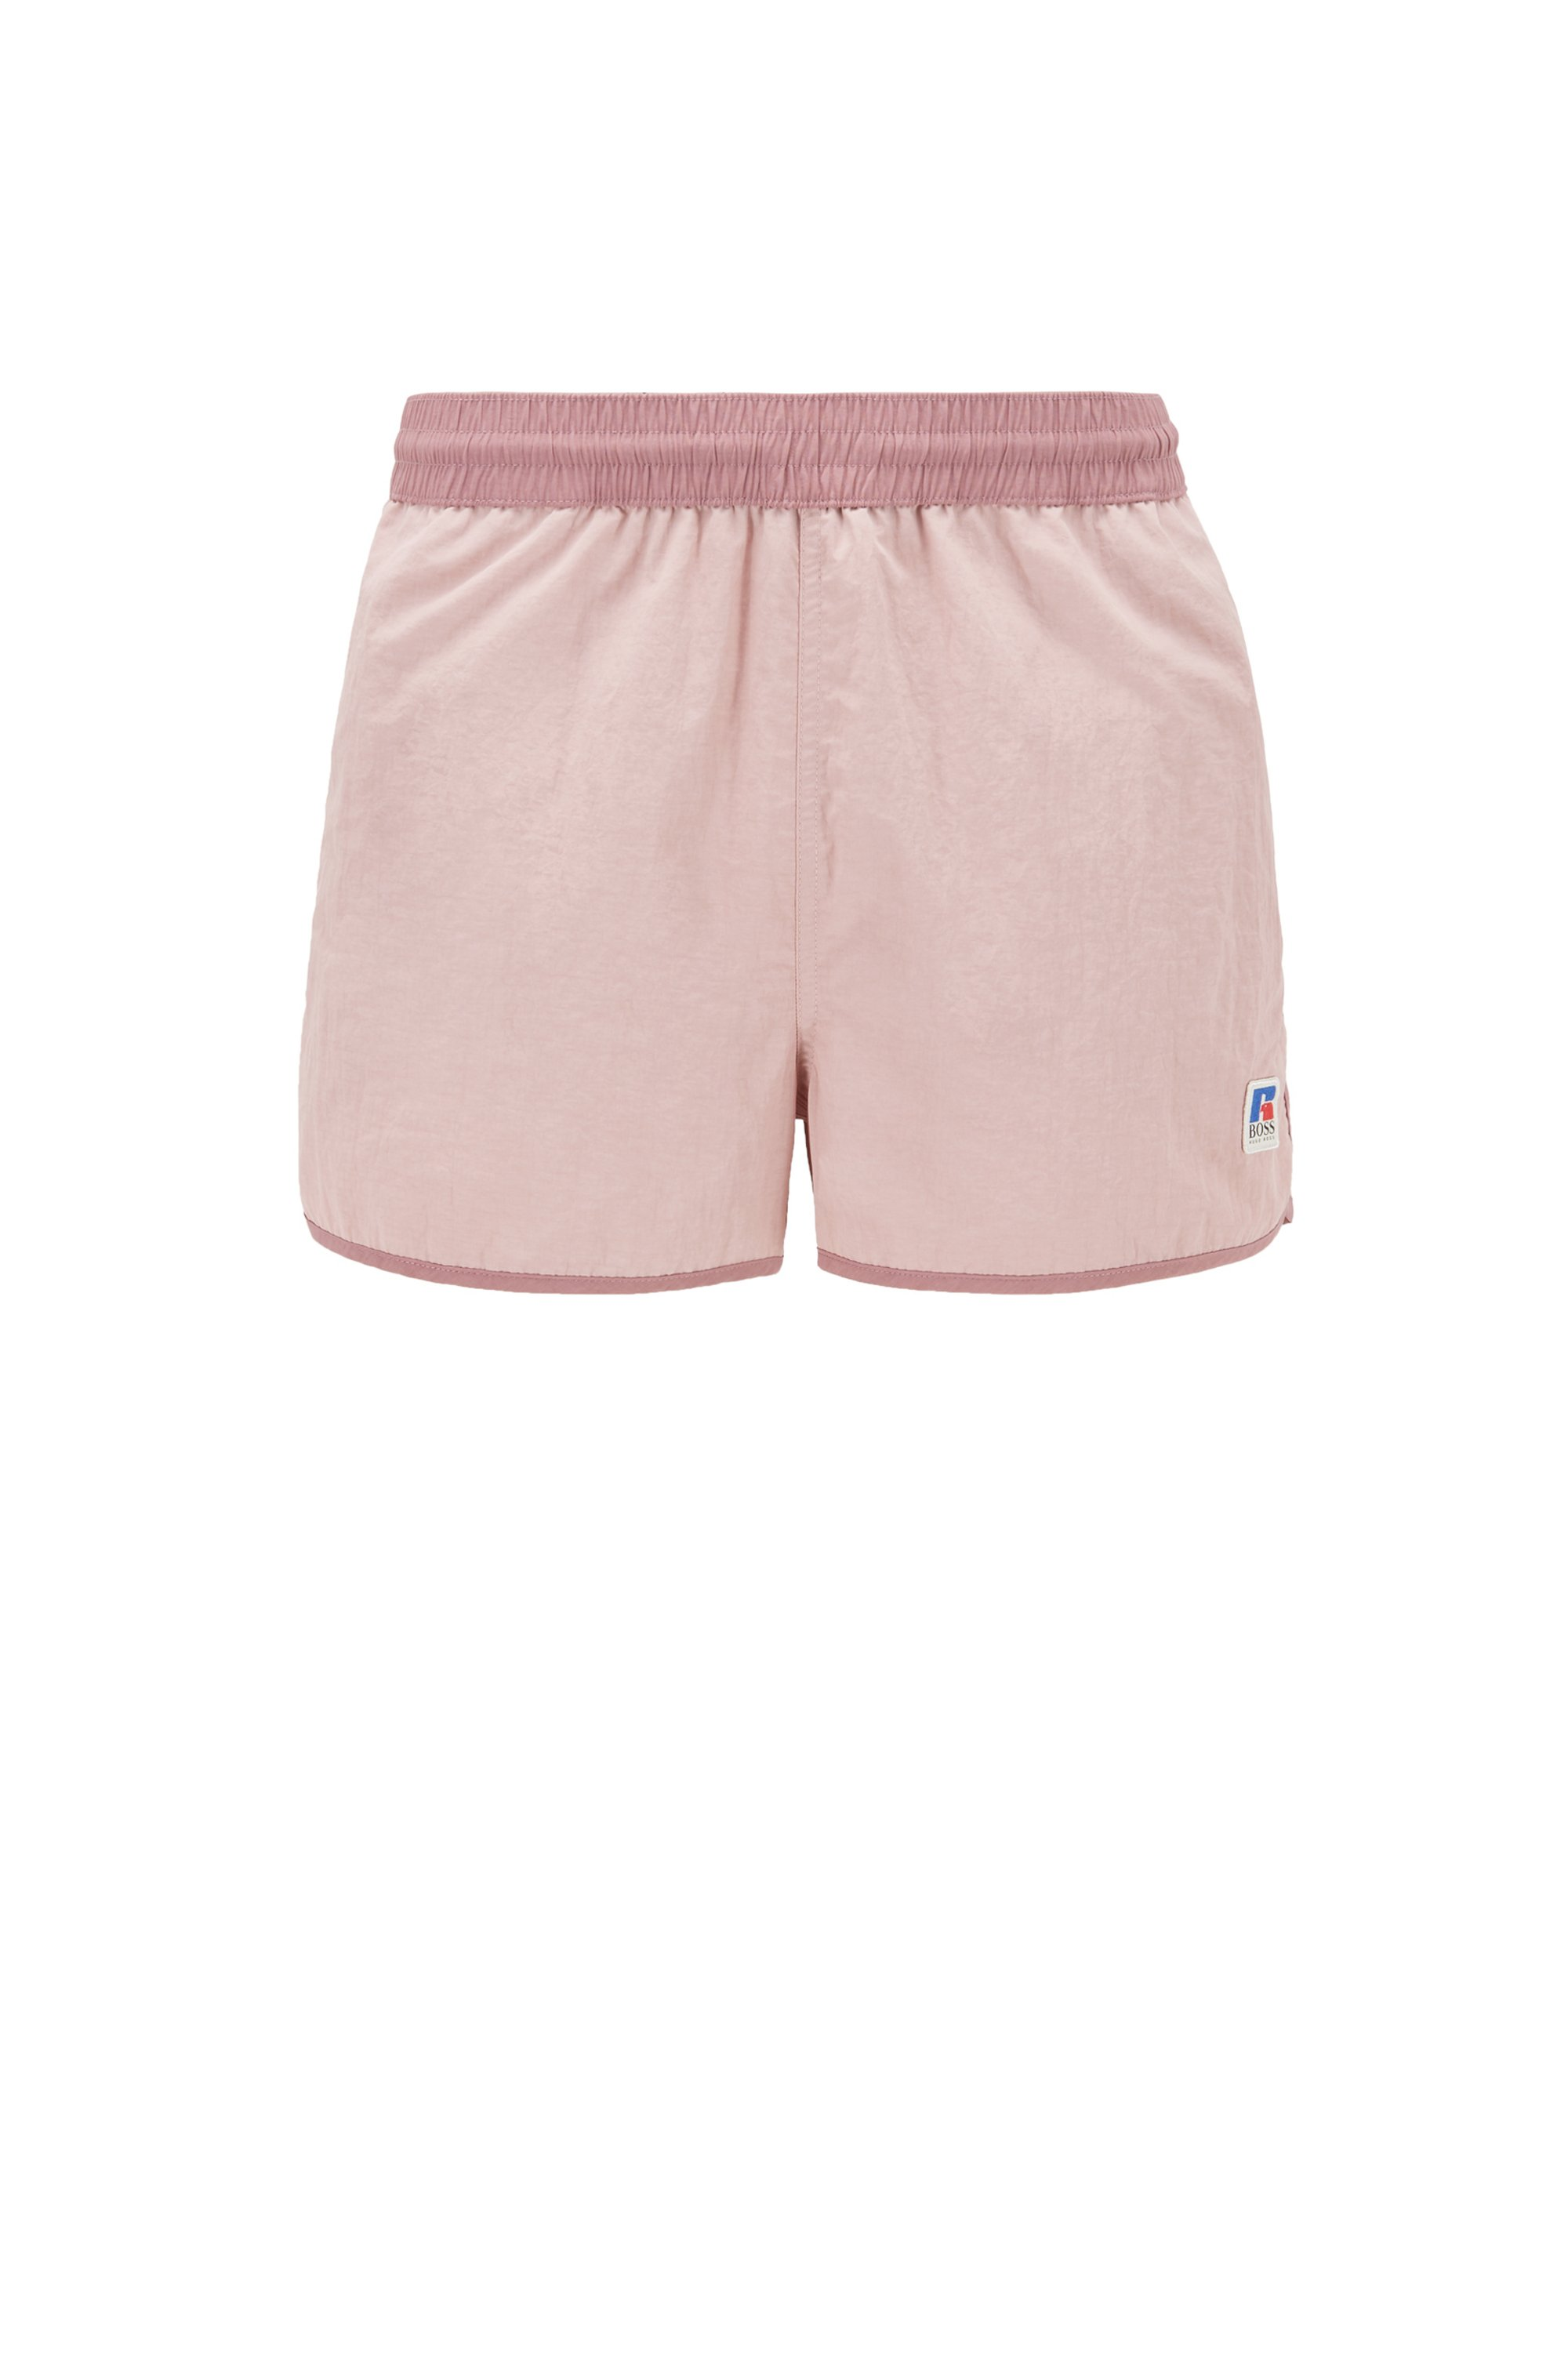 Quick-dry short-length swim shorts with exclusive logo, light pink